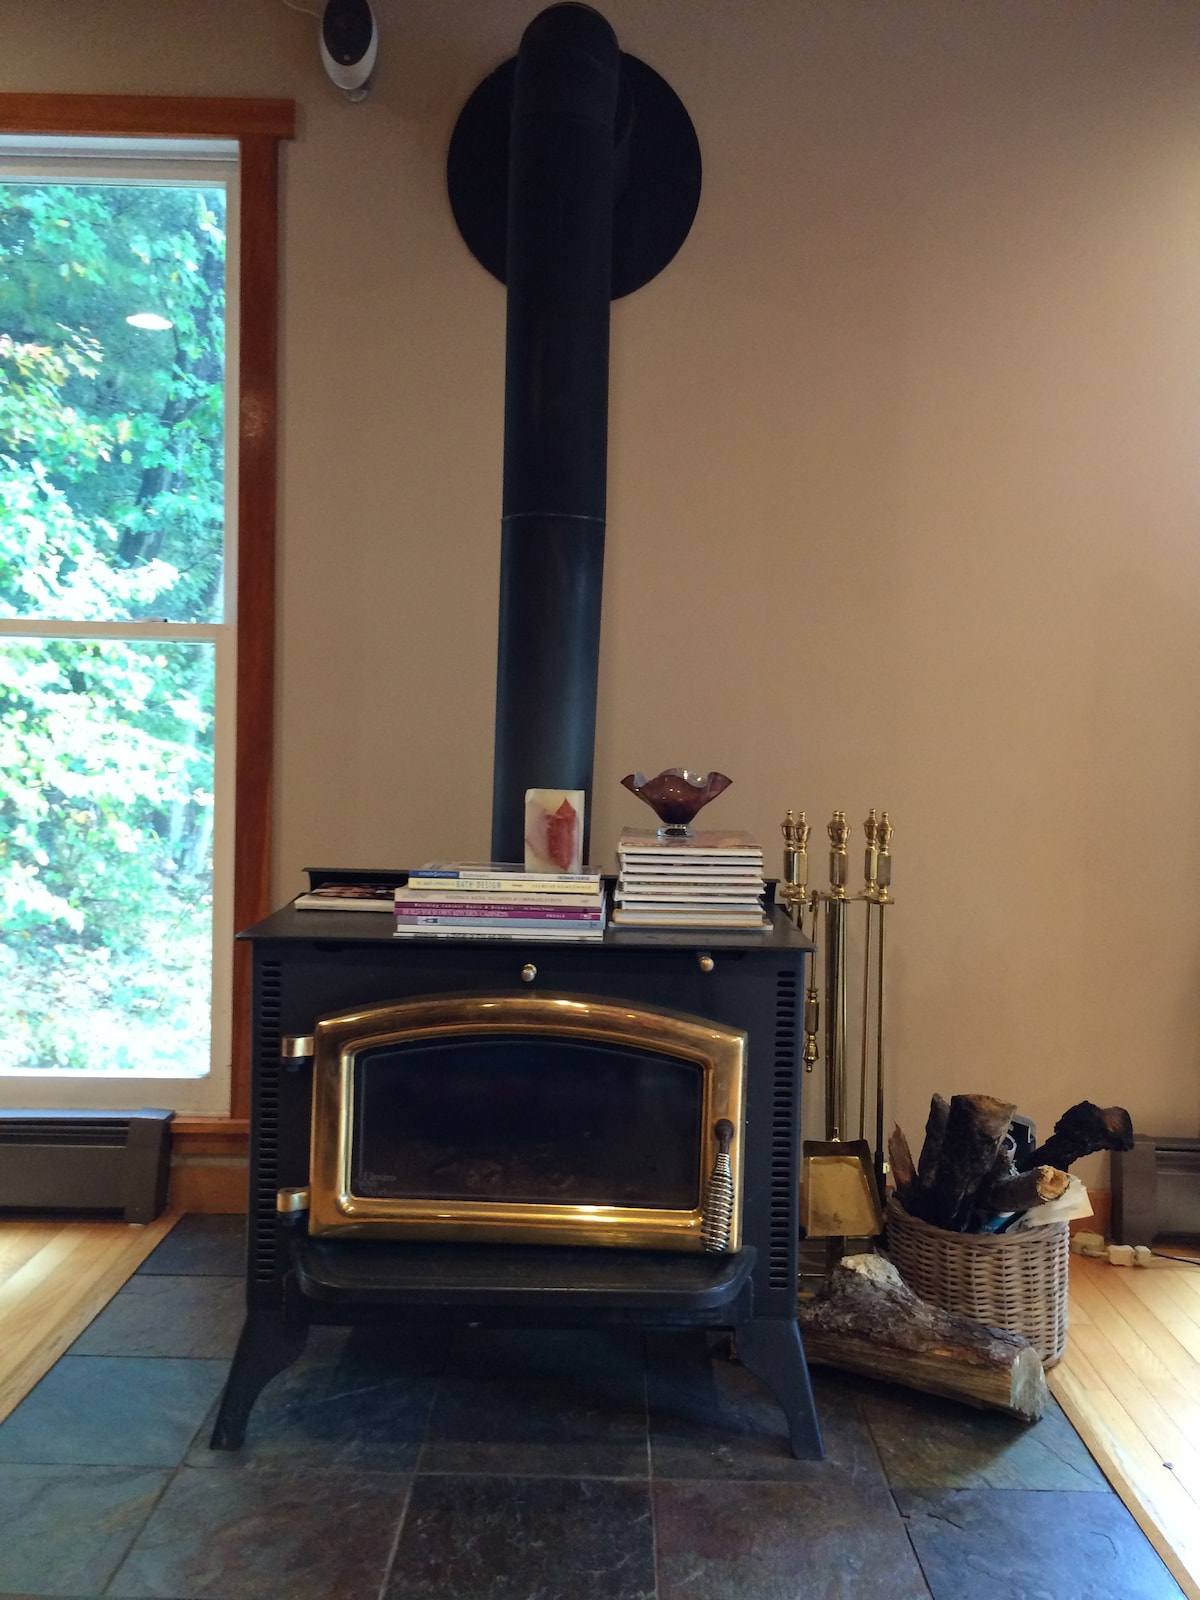 The wood burning stove keeps the main floor nice and warm on those cold winter nights.